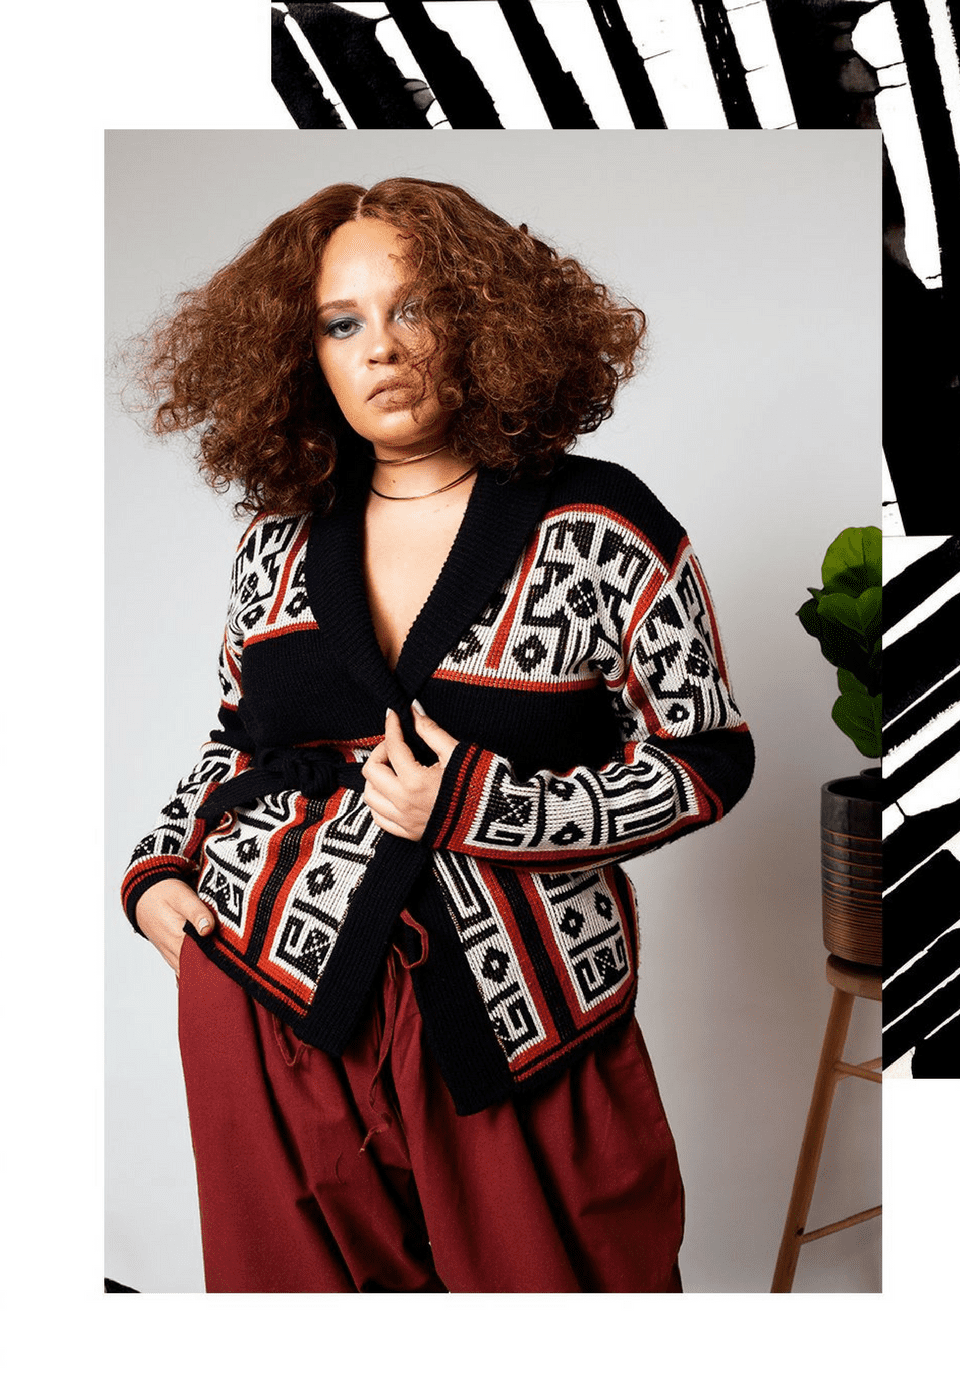 plus size fall collection, plus size fashion, plus size clothing, plus size designer